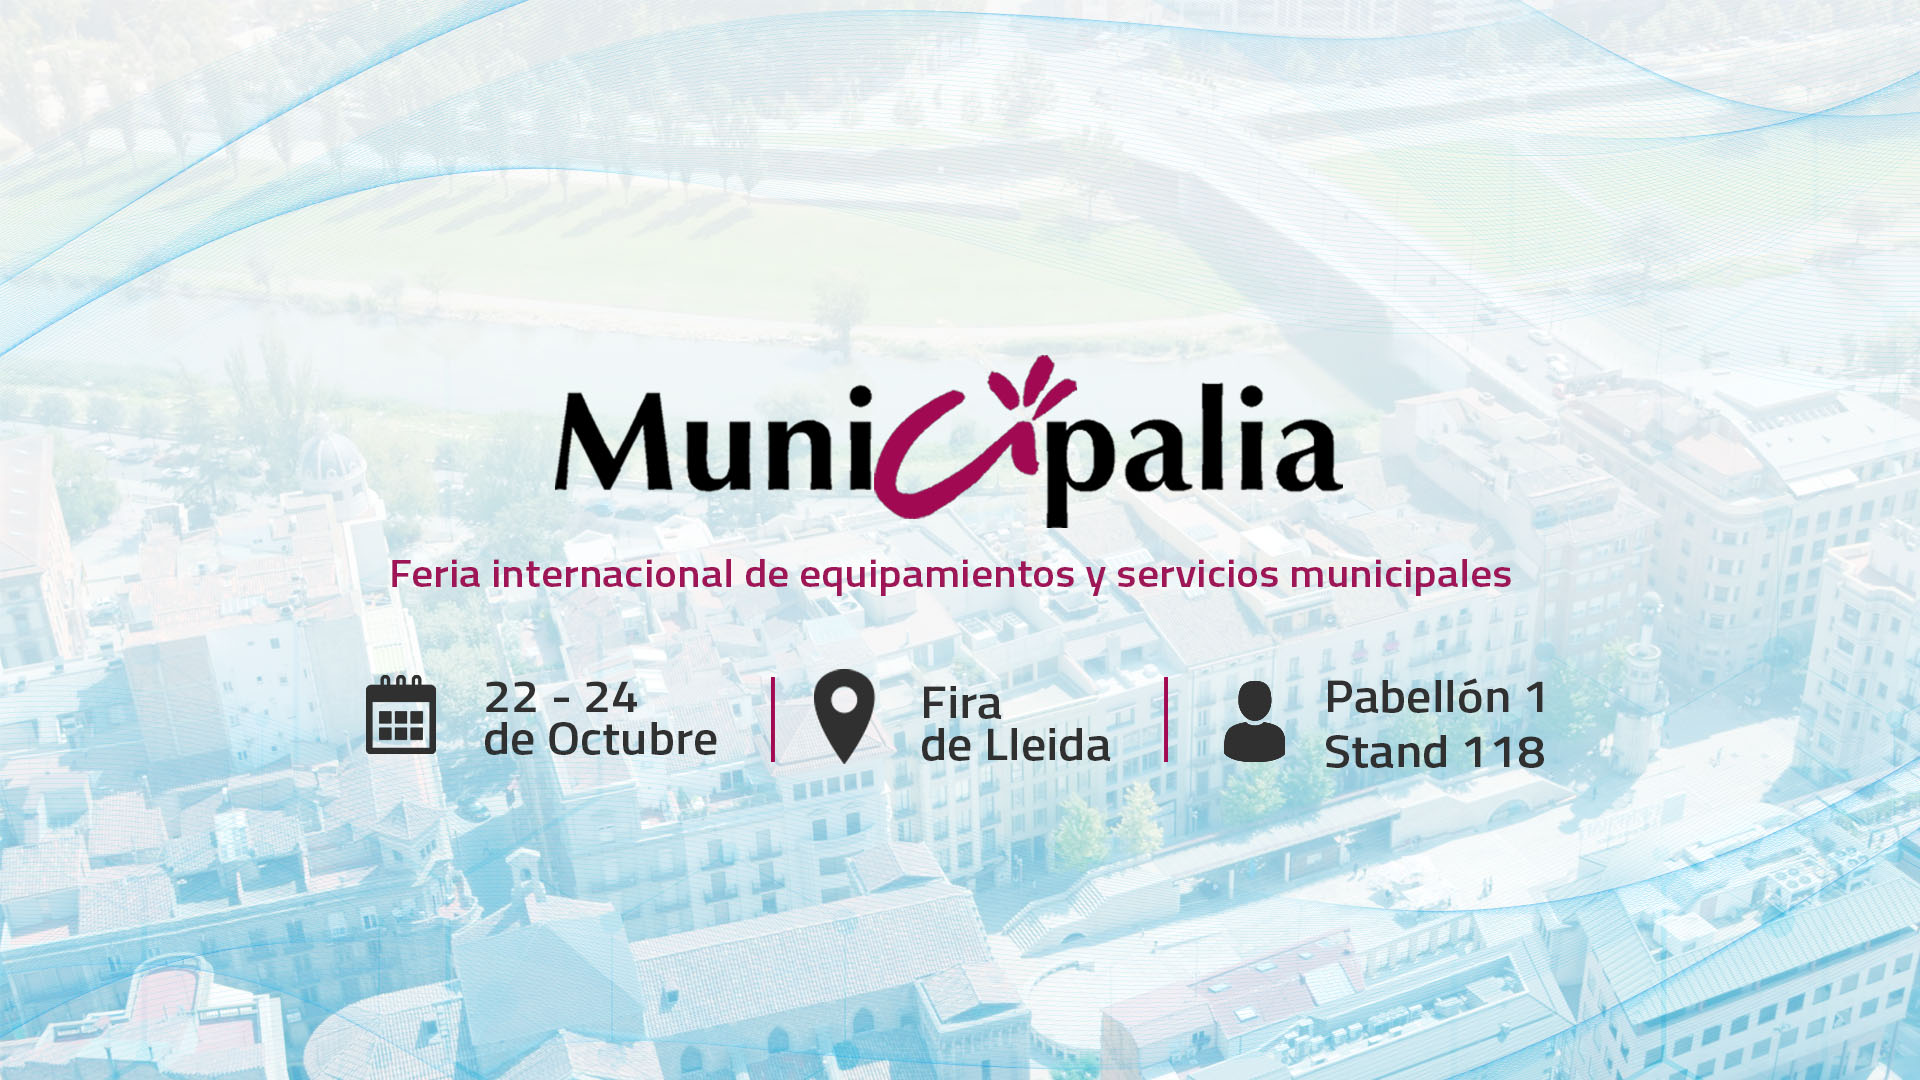 ADTEL assists with BCN Projecta to Municipalia 2019 fair